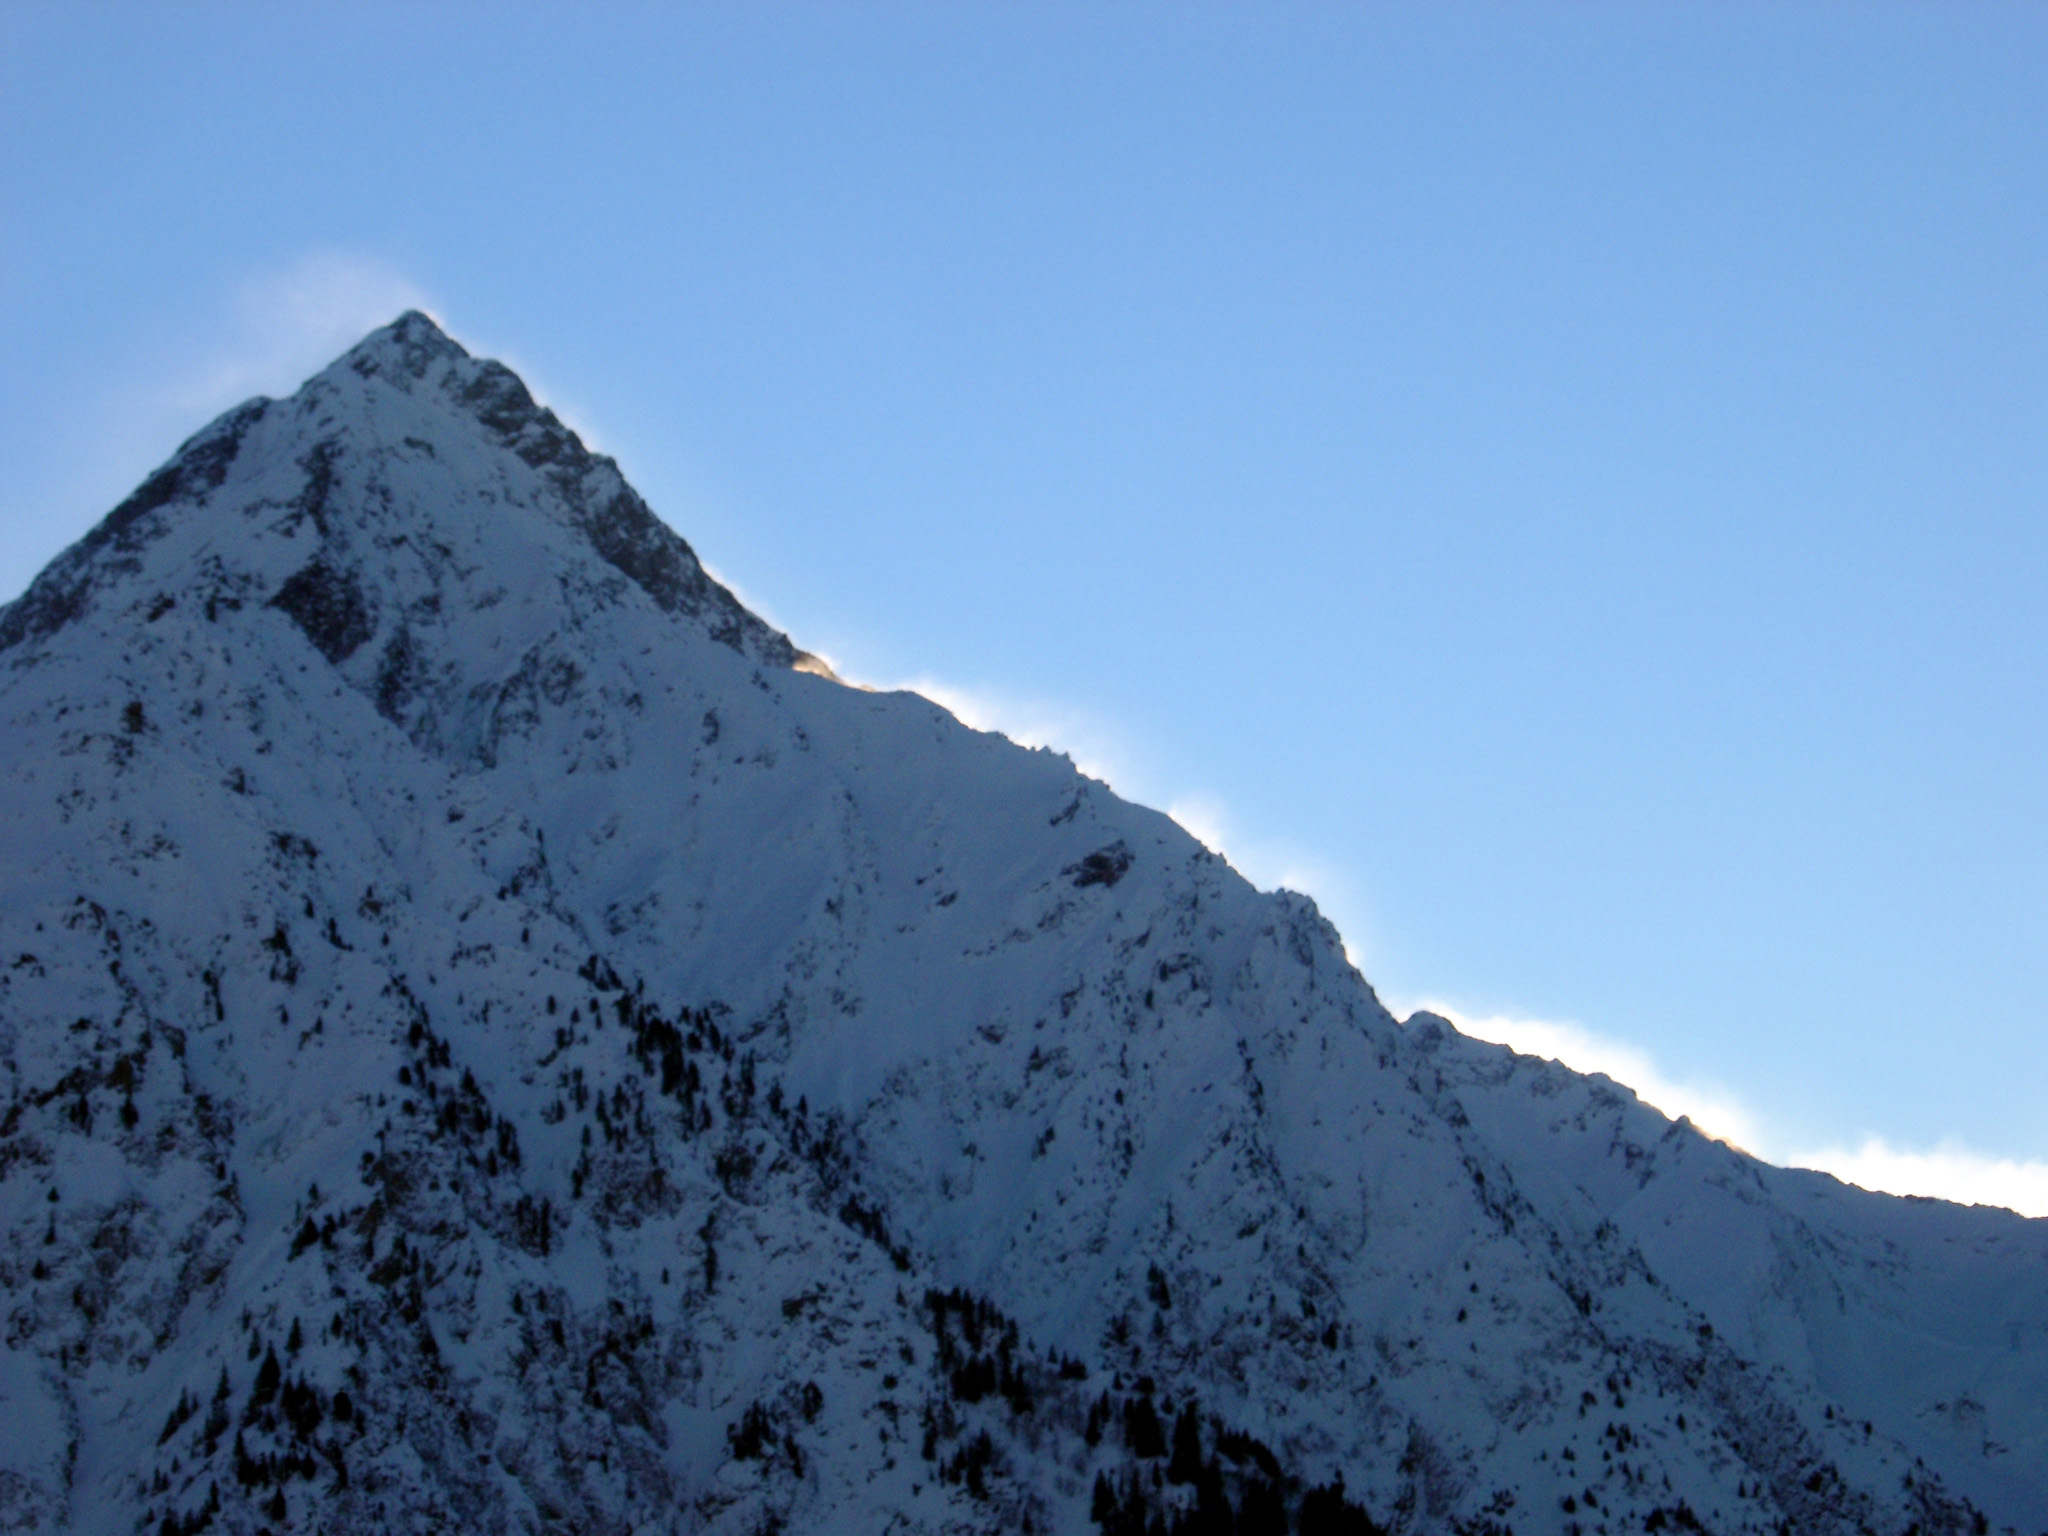 Sunrise of a snow covered mountain peak gilding the rim with a golden glow against a clear blue winter sky